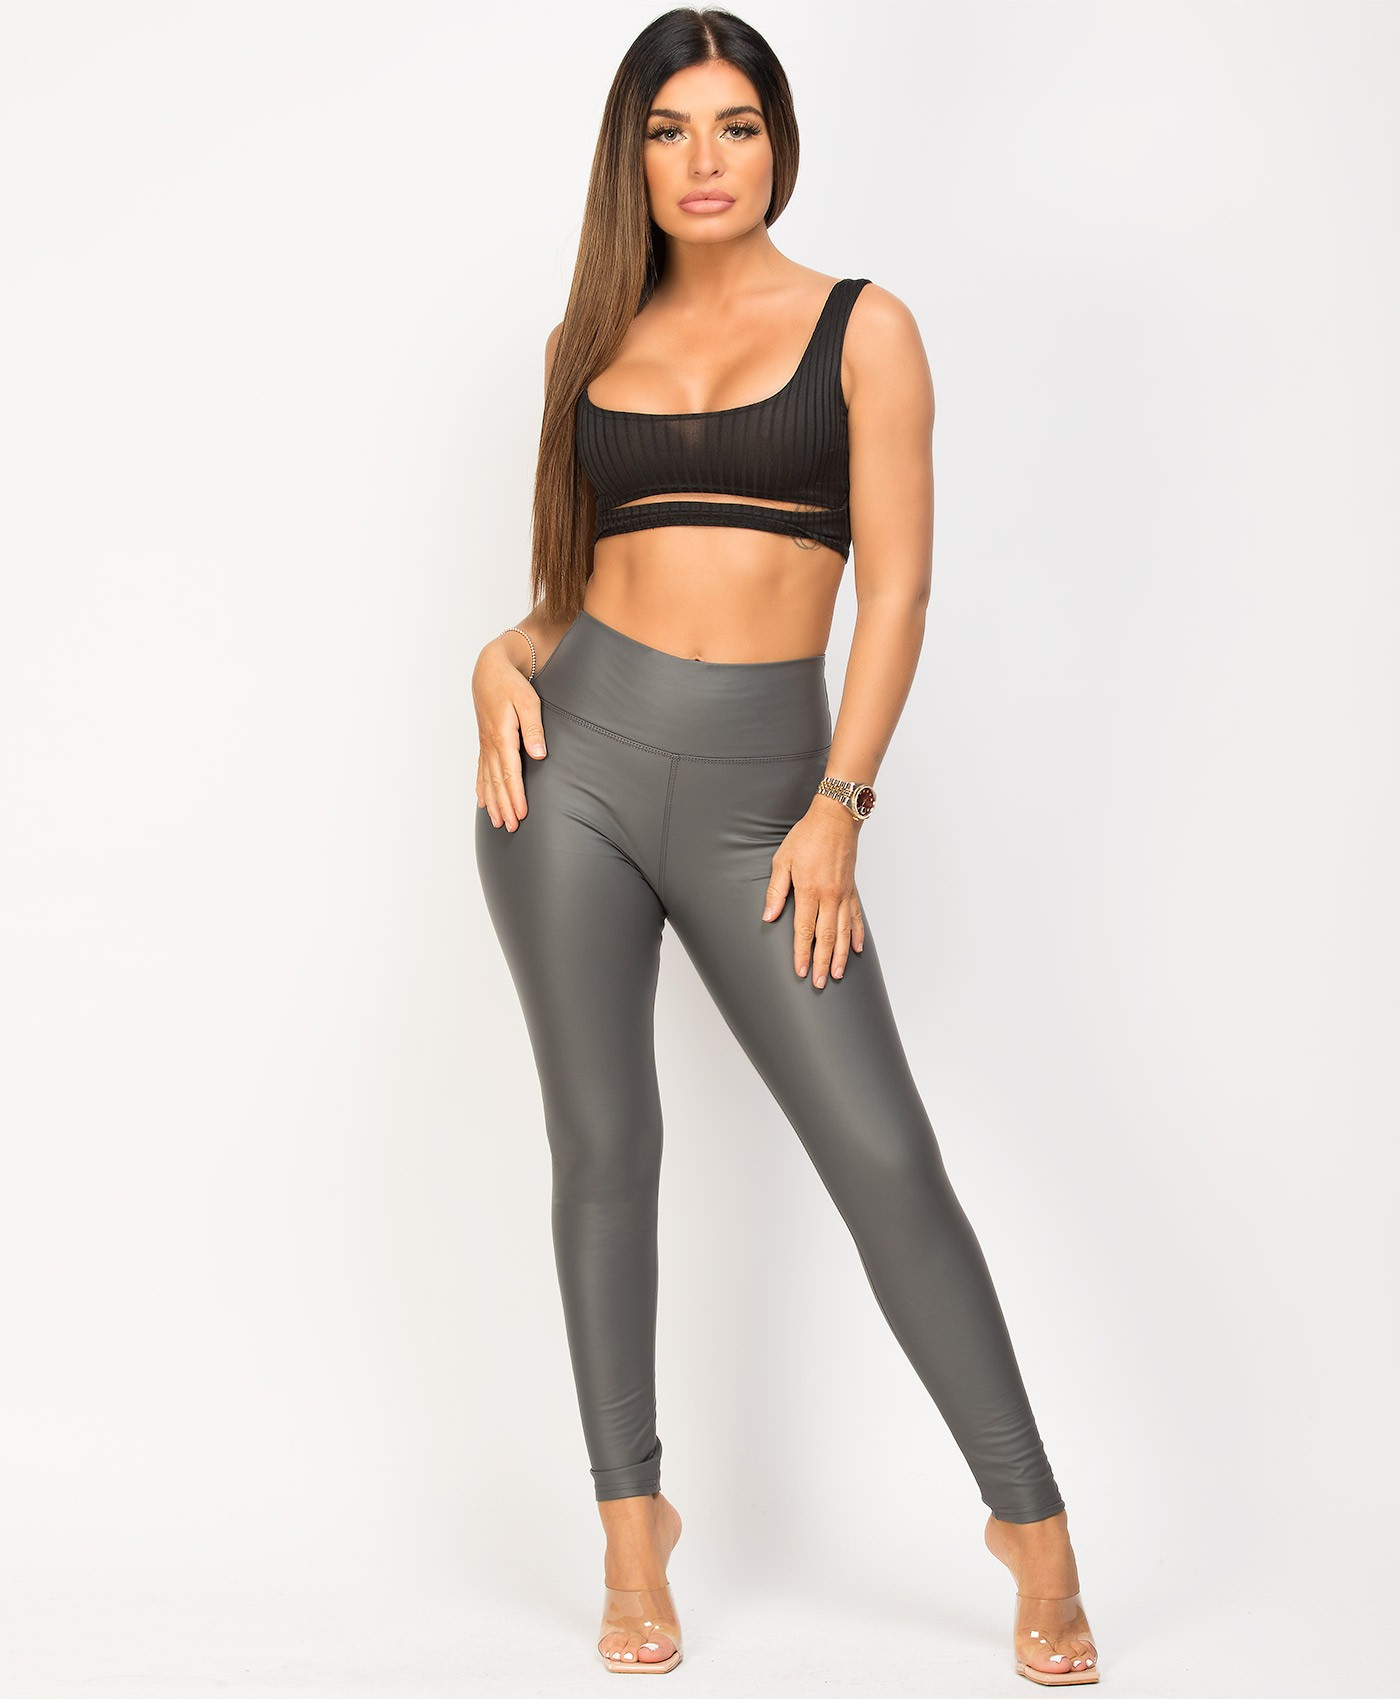 Grey-Matte-Faux-Leather-Wet-Look-Leggings-1